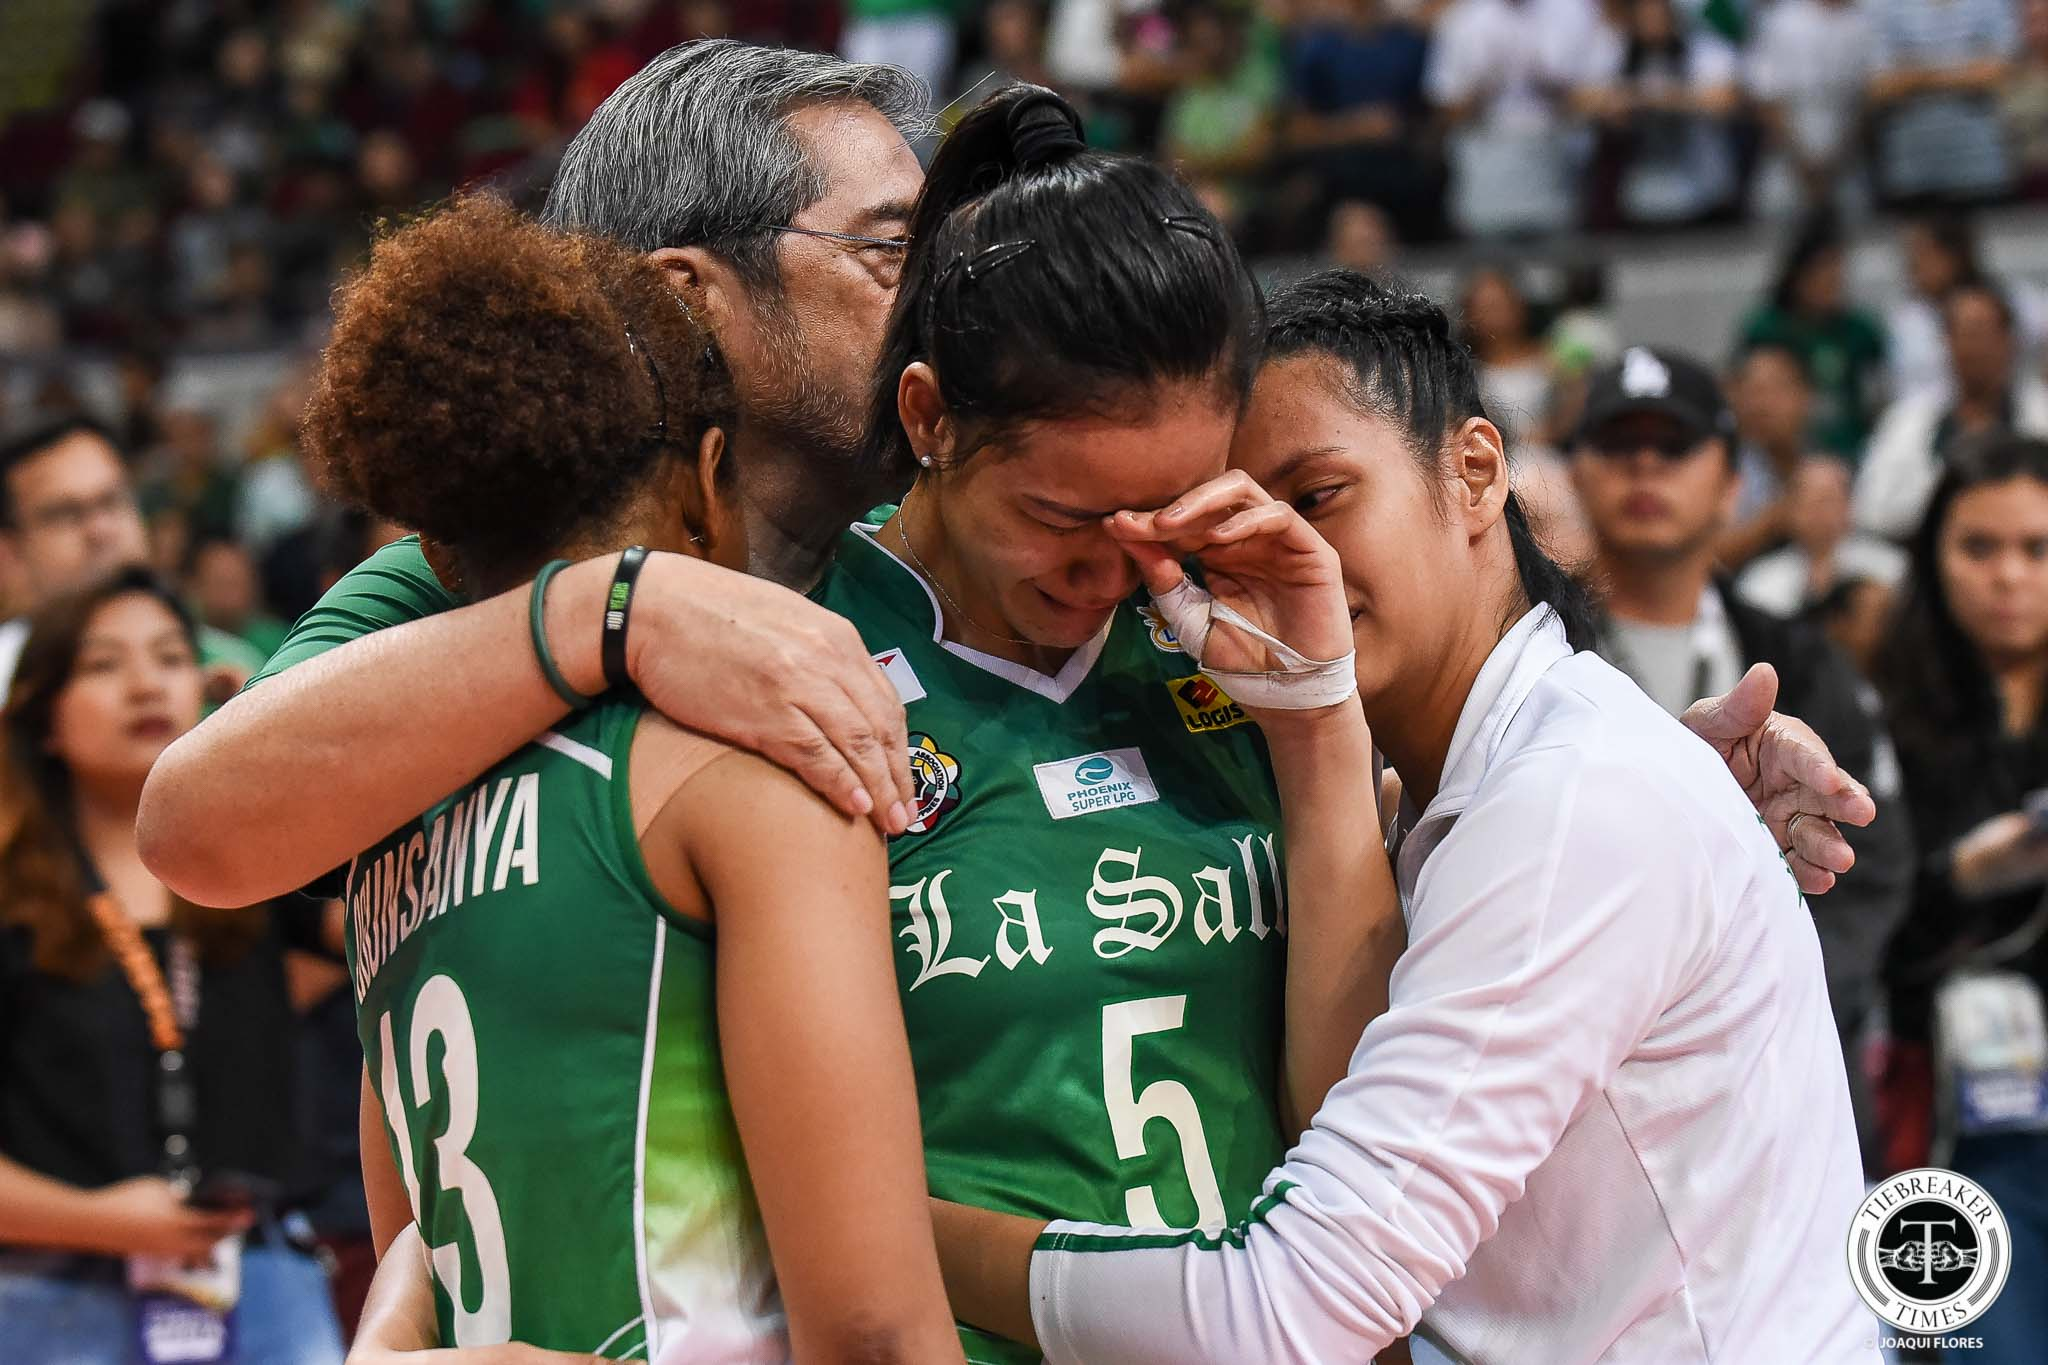 UAAP-81-Volleyball-DLSU-vs.-UST-Clemente-9654 Ramil De Jesus optimistic as decade of dominance ends DLSU News UAAP Volleyball  - philippine sports news